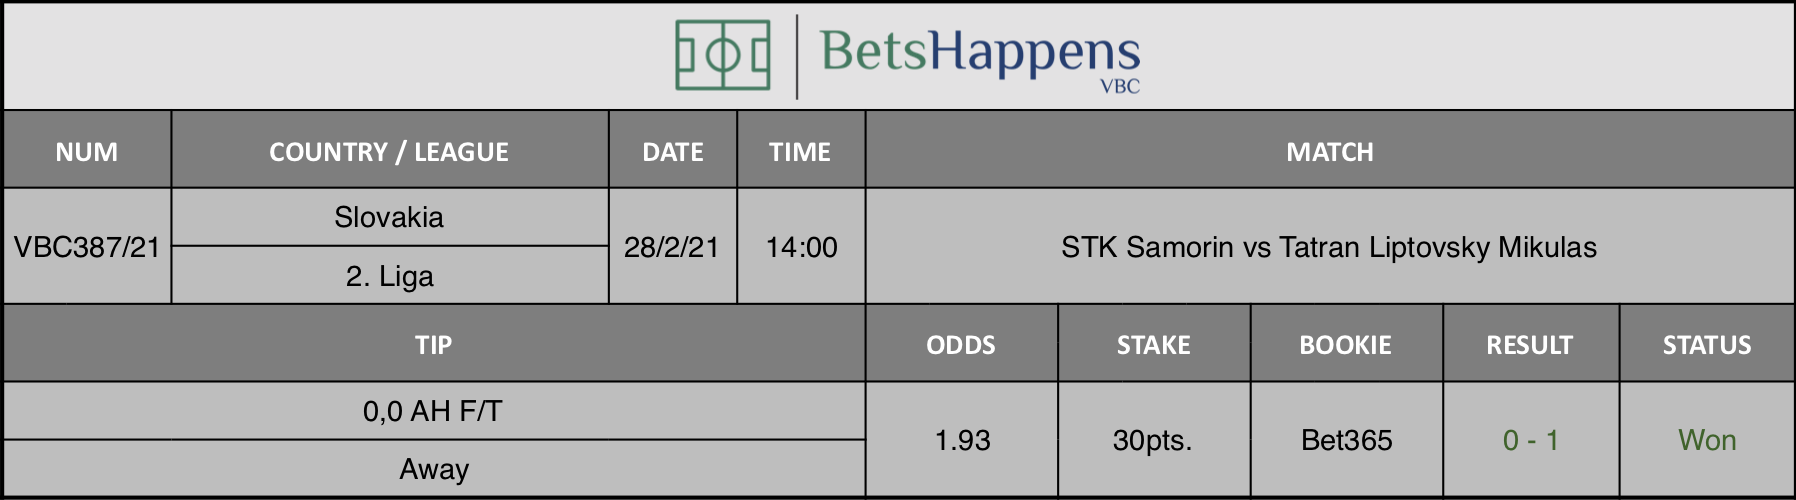 Results of our tip for the STK Samorin vs Tatran Liptovsky Mikulas match where 0,0 AH F/T  Away is recommended.